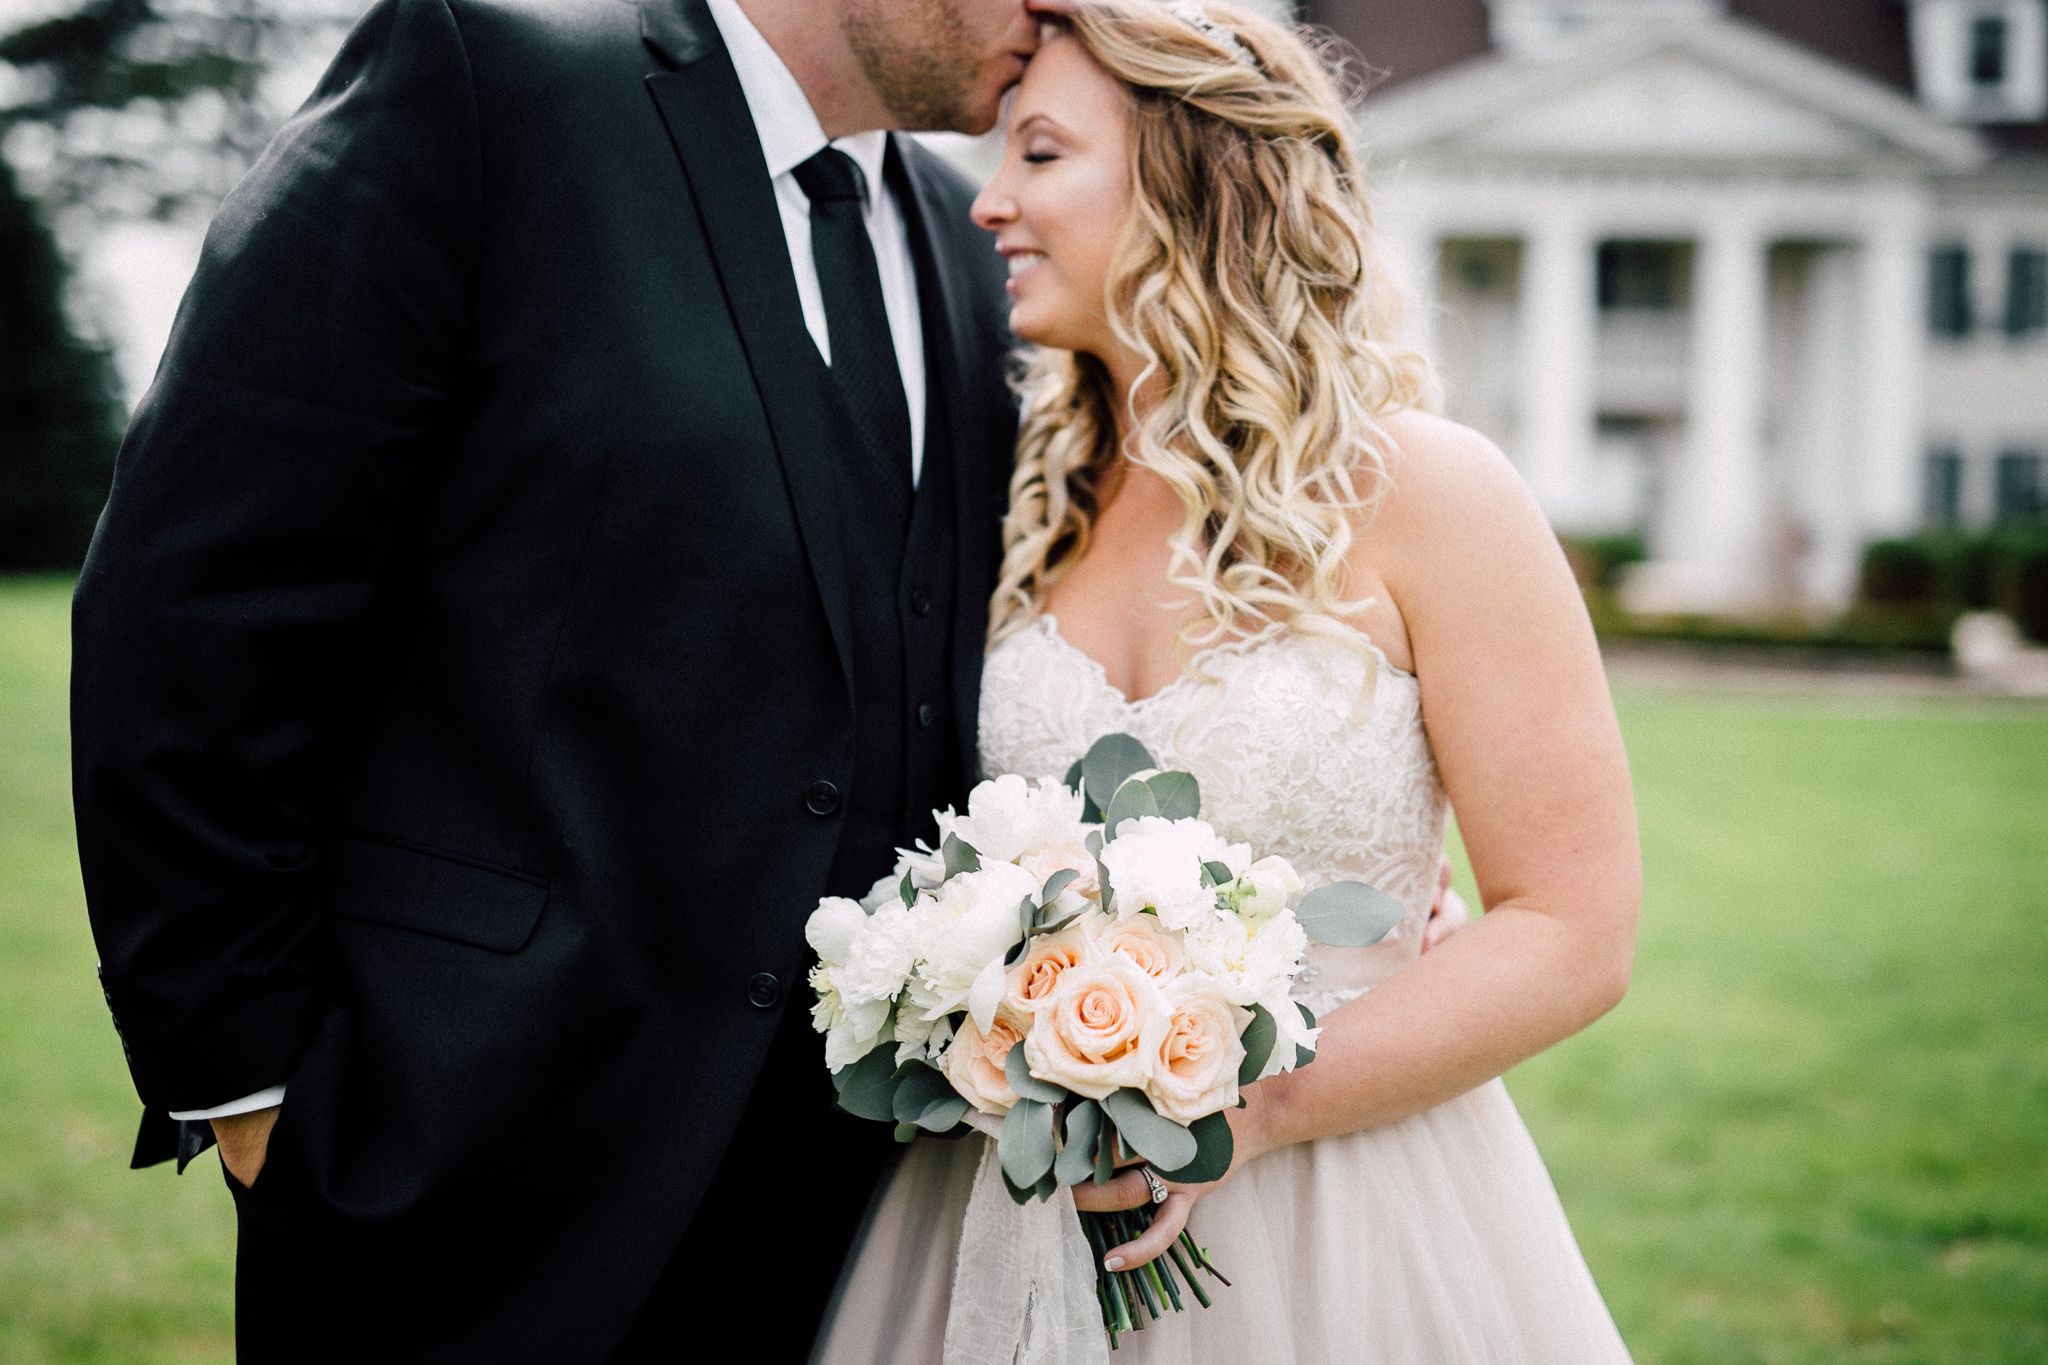 Queens-Landing-Niagara-on-the-Lake-Wedding-photography-by-Simply-Lace-042.JPG